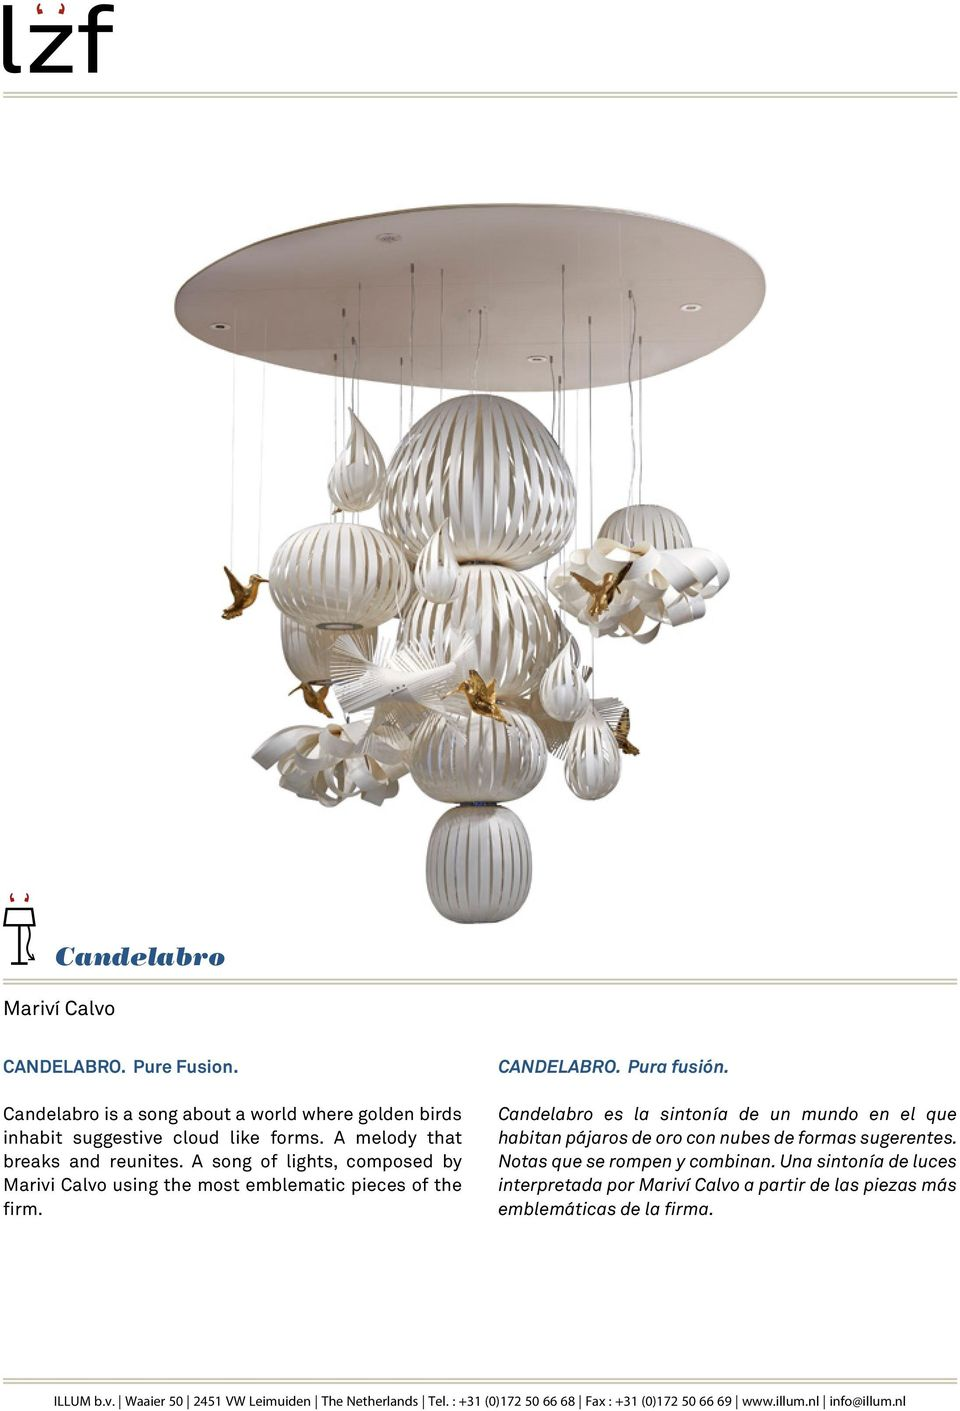 A song of lights, composed by Marivi Calvo using the most emblematic pieces of the firm. CANDELABRO. Pura fusión.